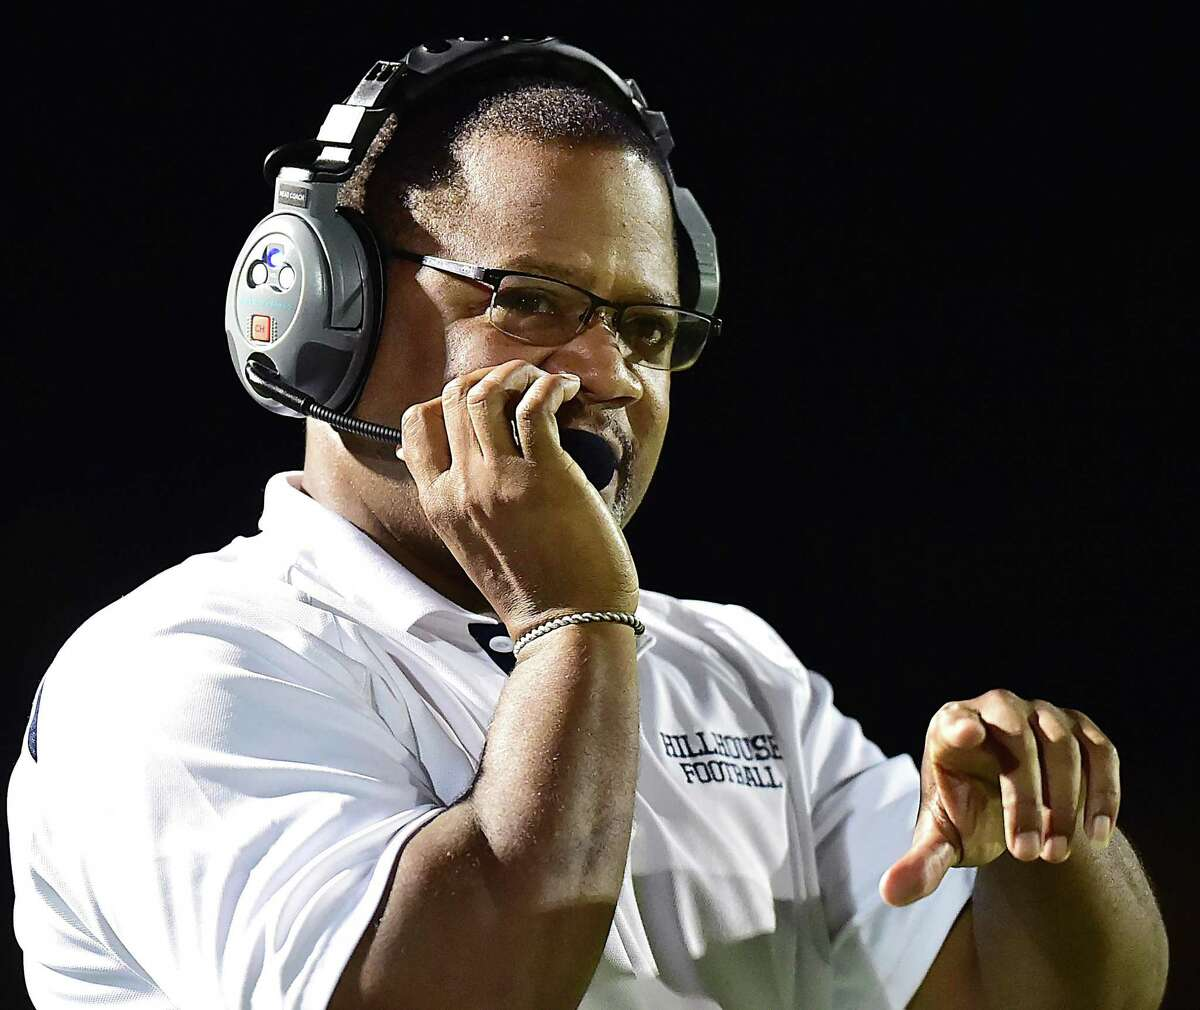 Hillhouse football coach Reggie Lytle talks to his staff from the sideline against Brookfield in 2018.